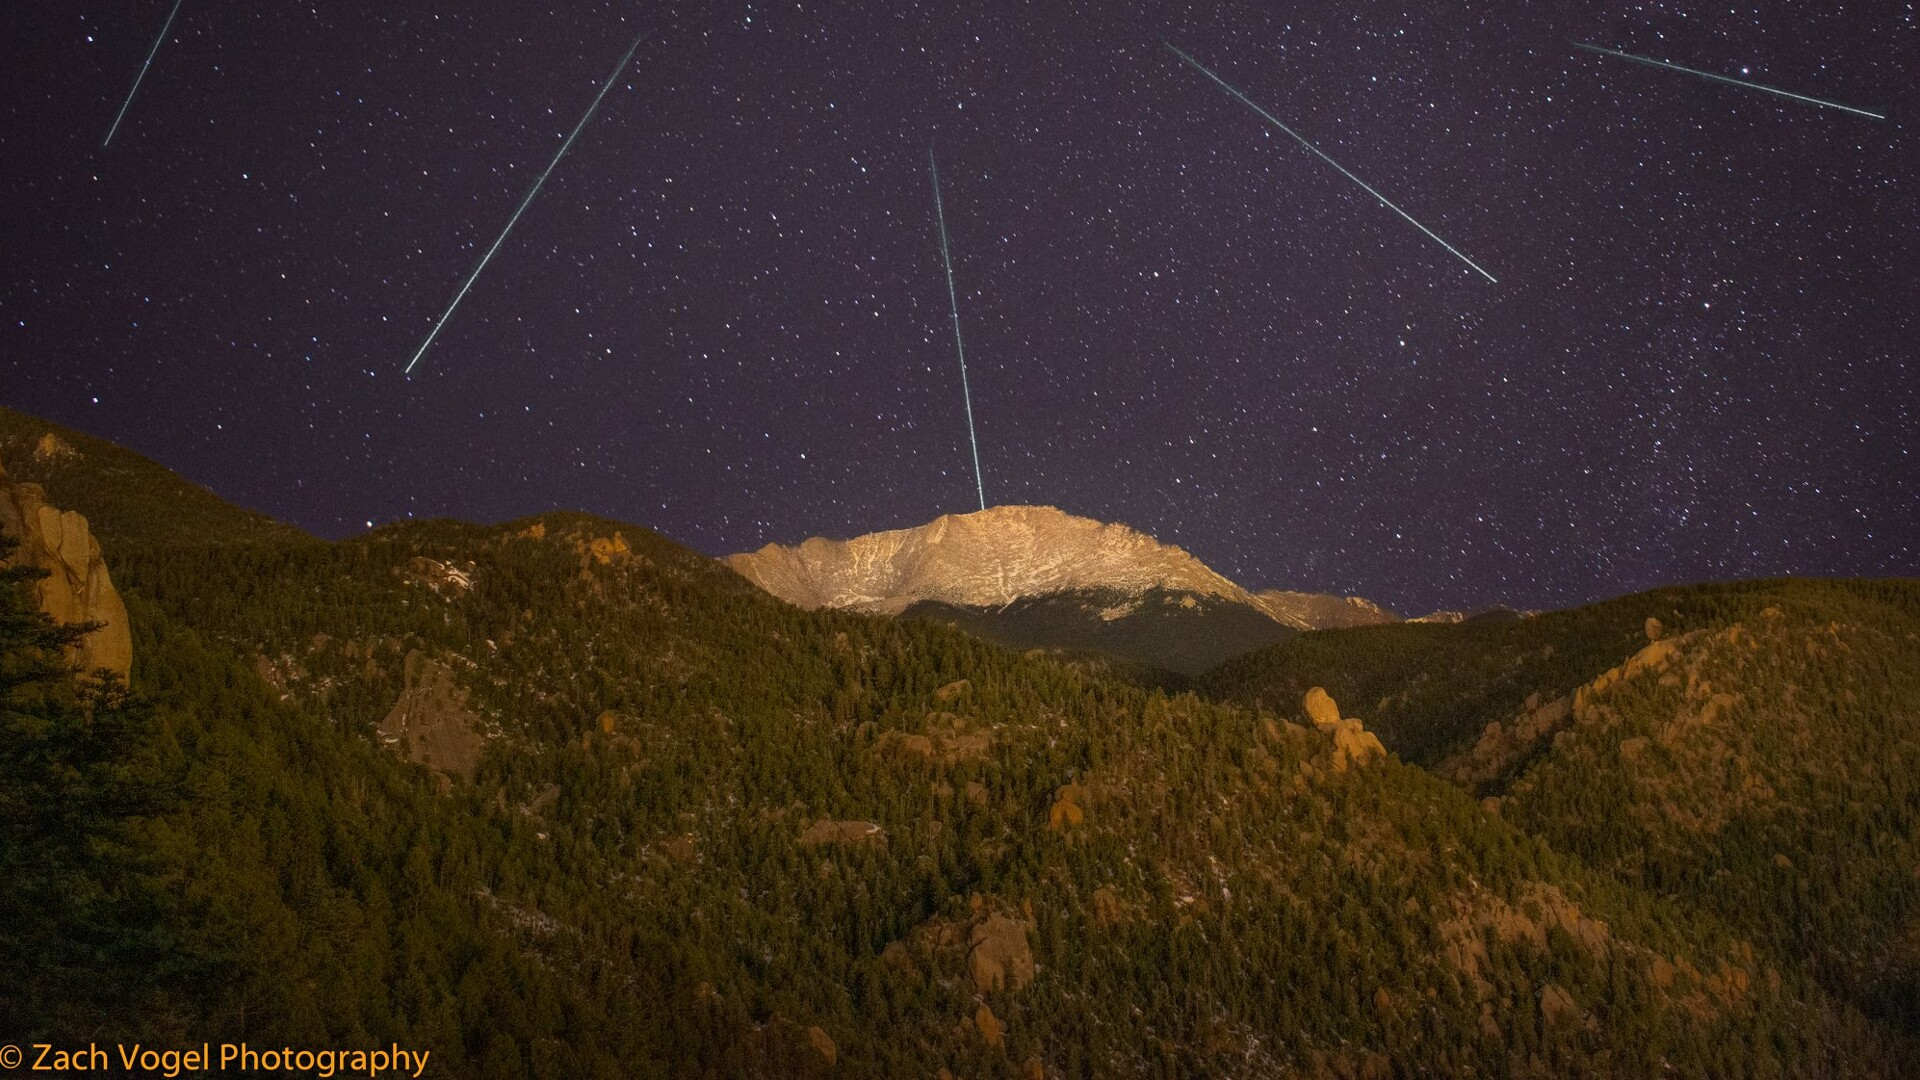 Leonid Meteor Shower Zach Vogel Photography.jpg